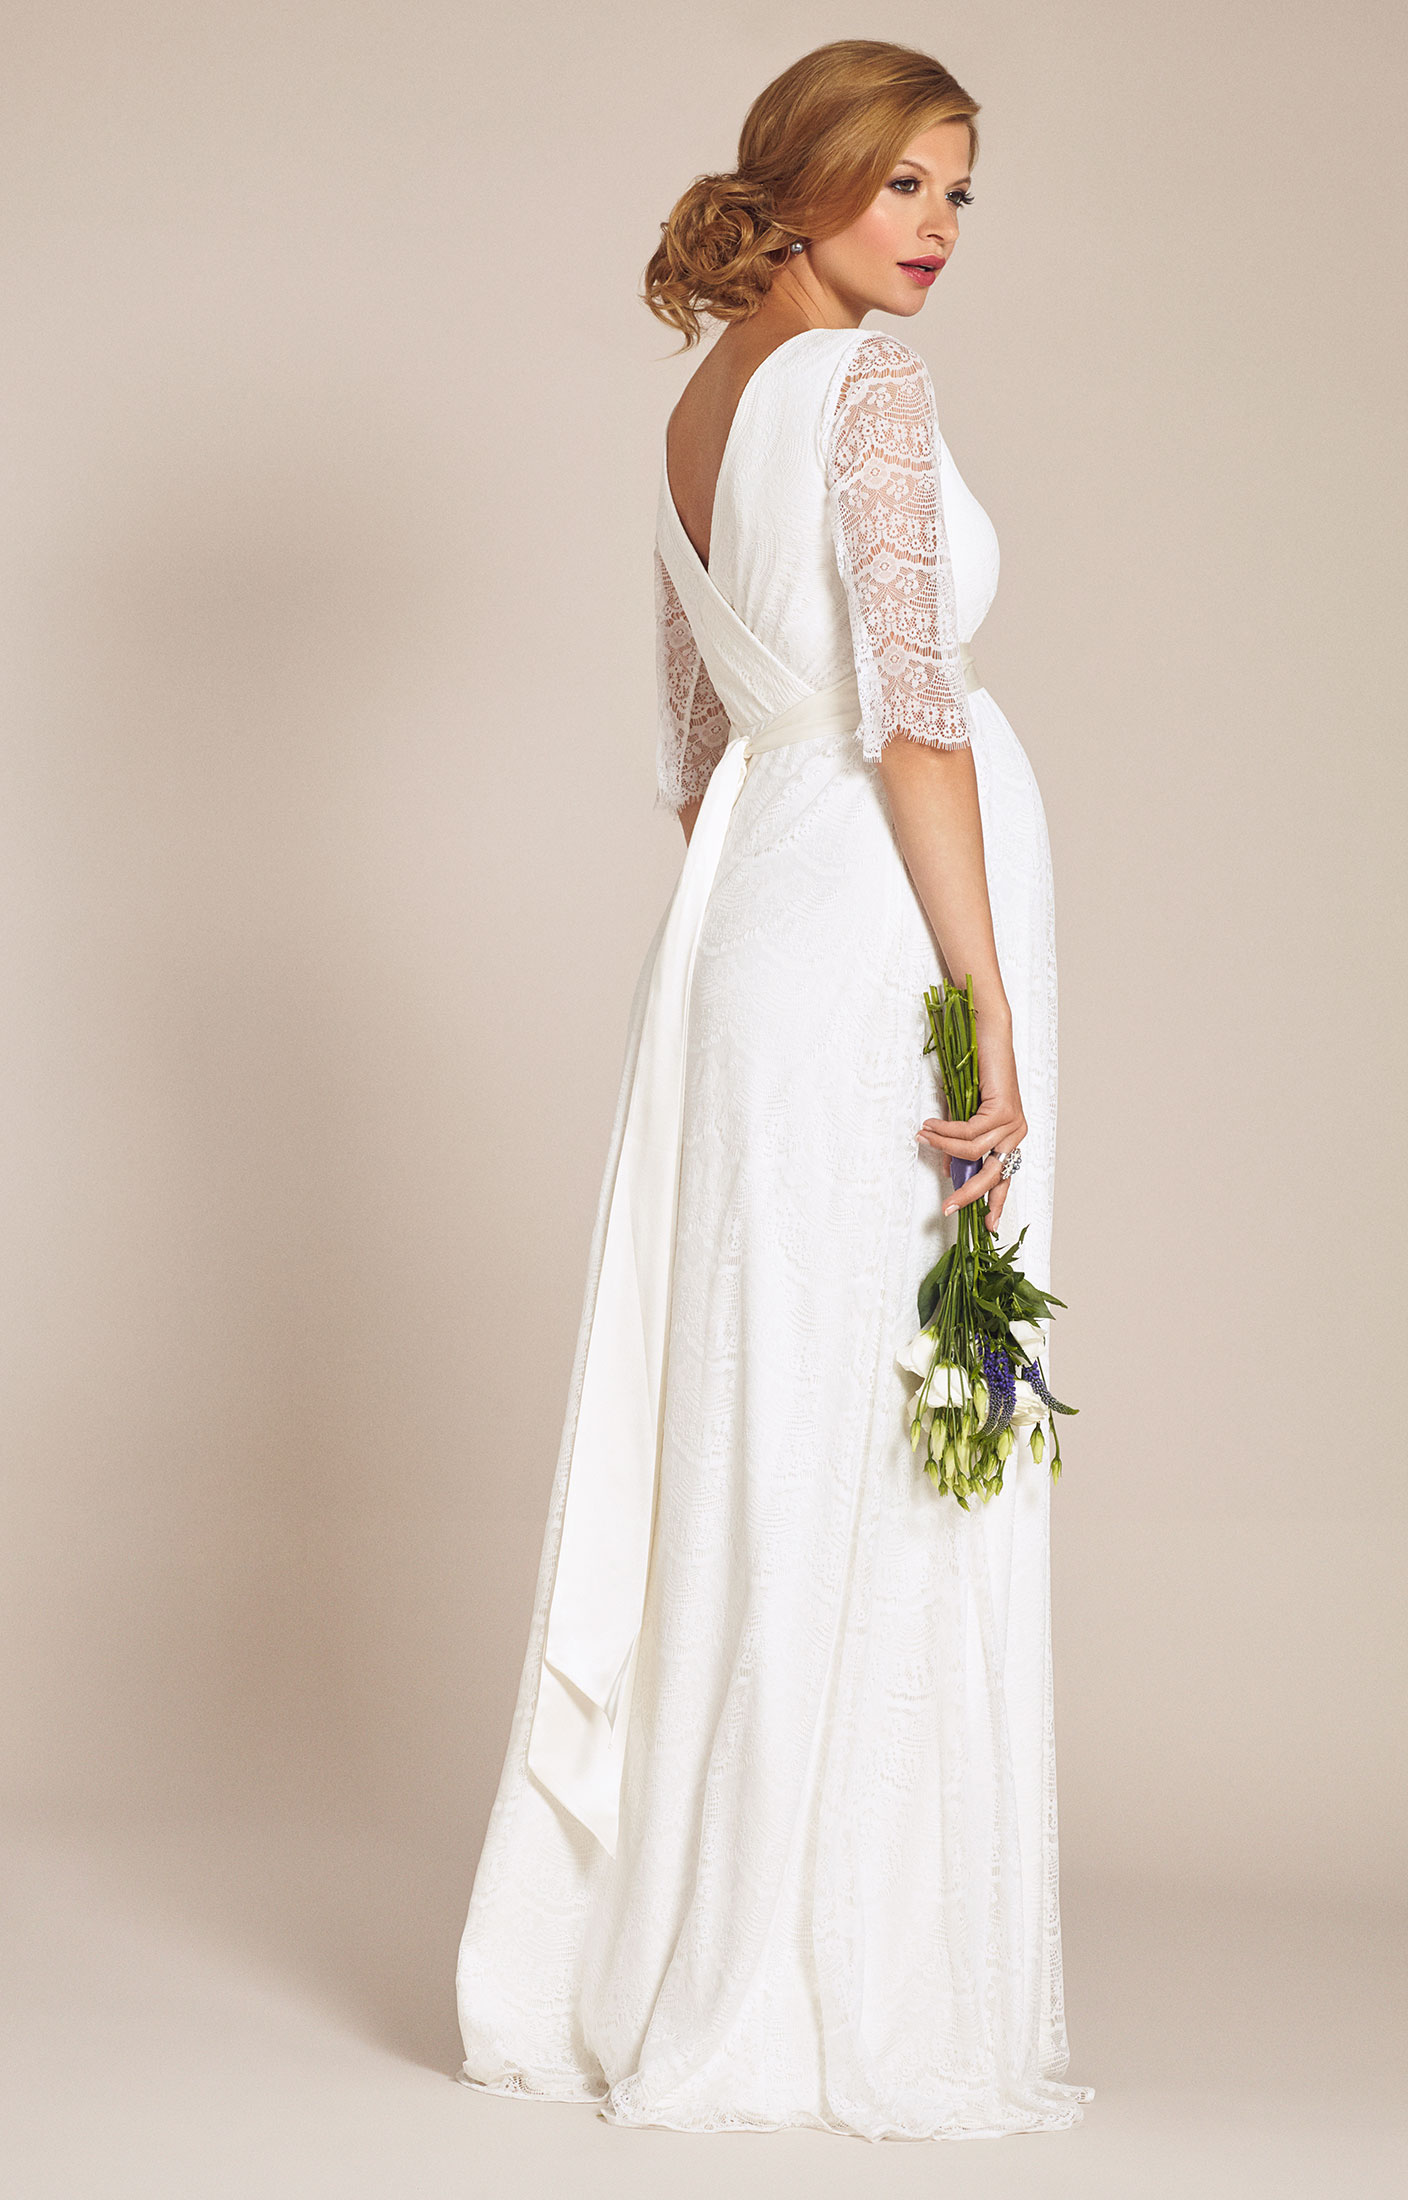 Amily maternity wedding gown ivory maternity wedding for Ivory maternity wedding dresses